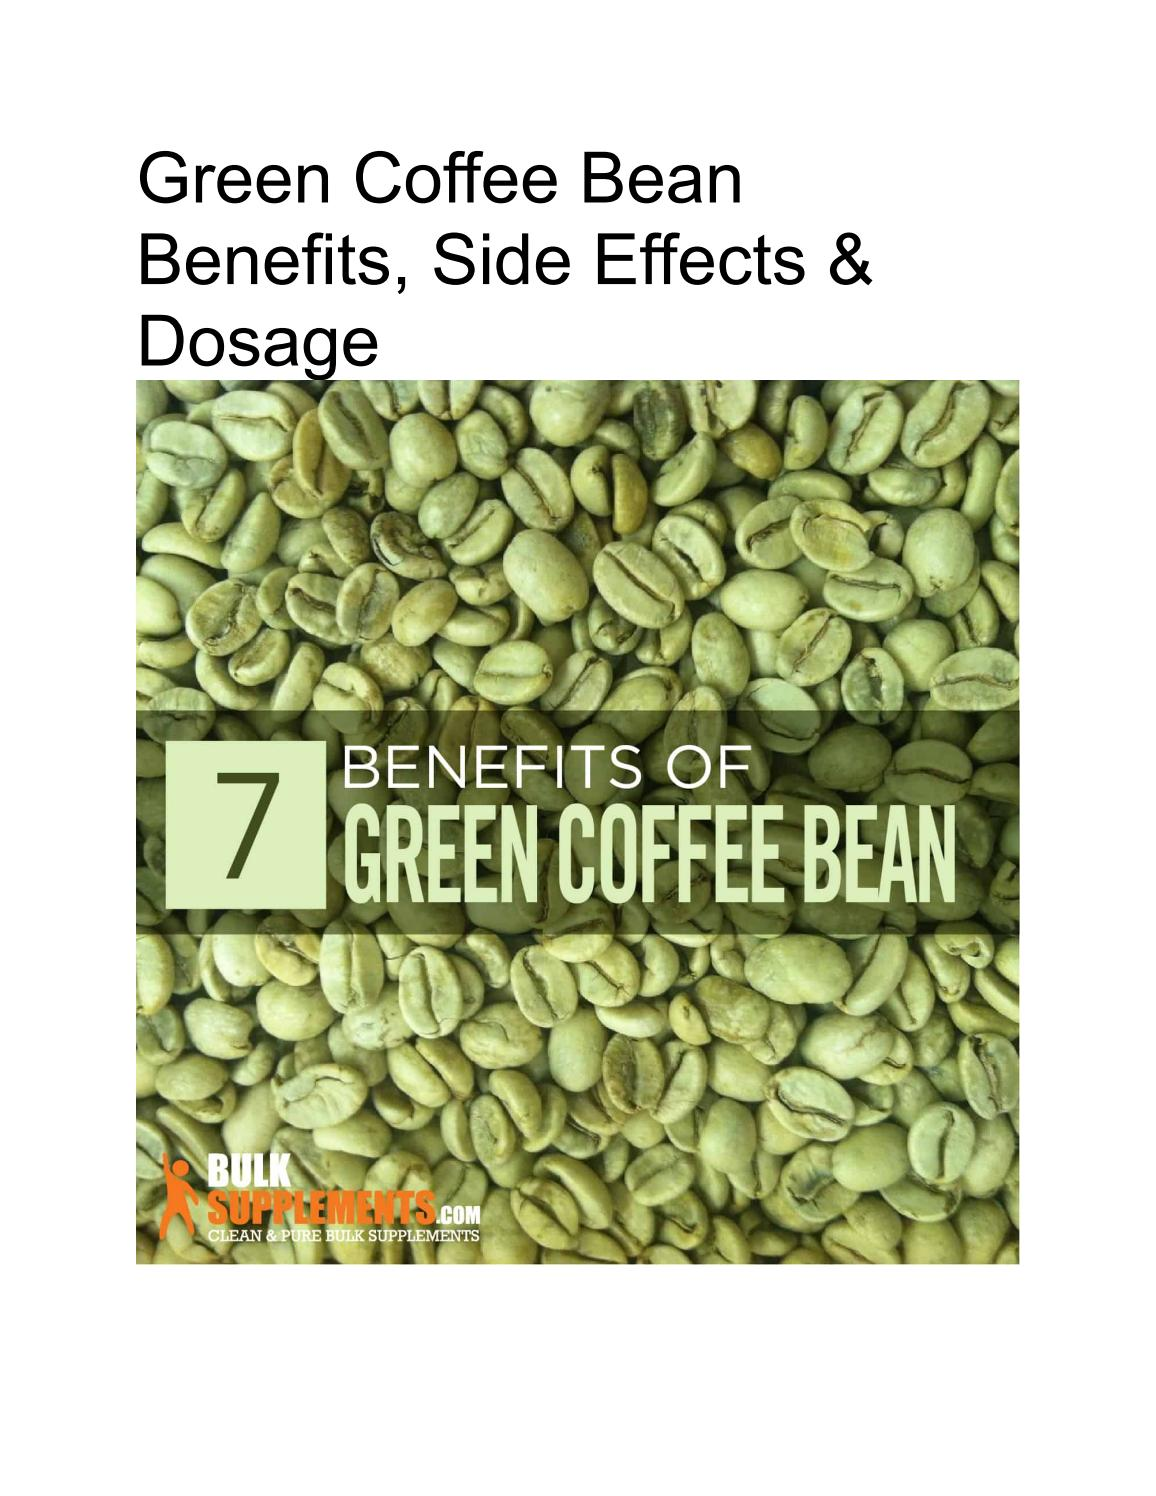 Green Coffee Bean Benefits Side Effects Dosage By